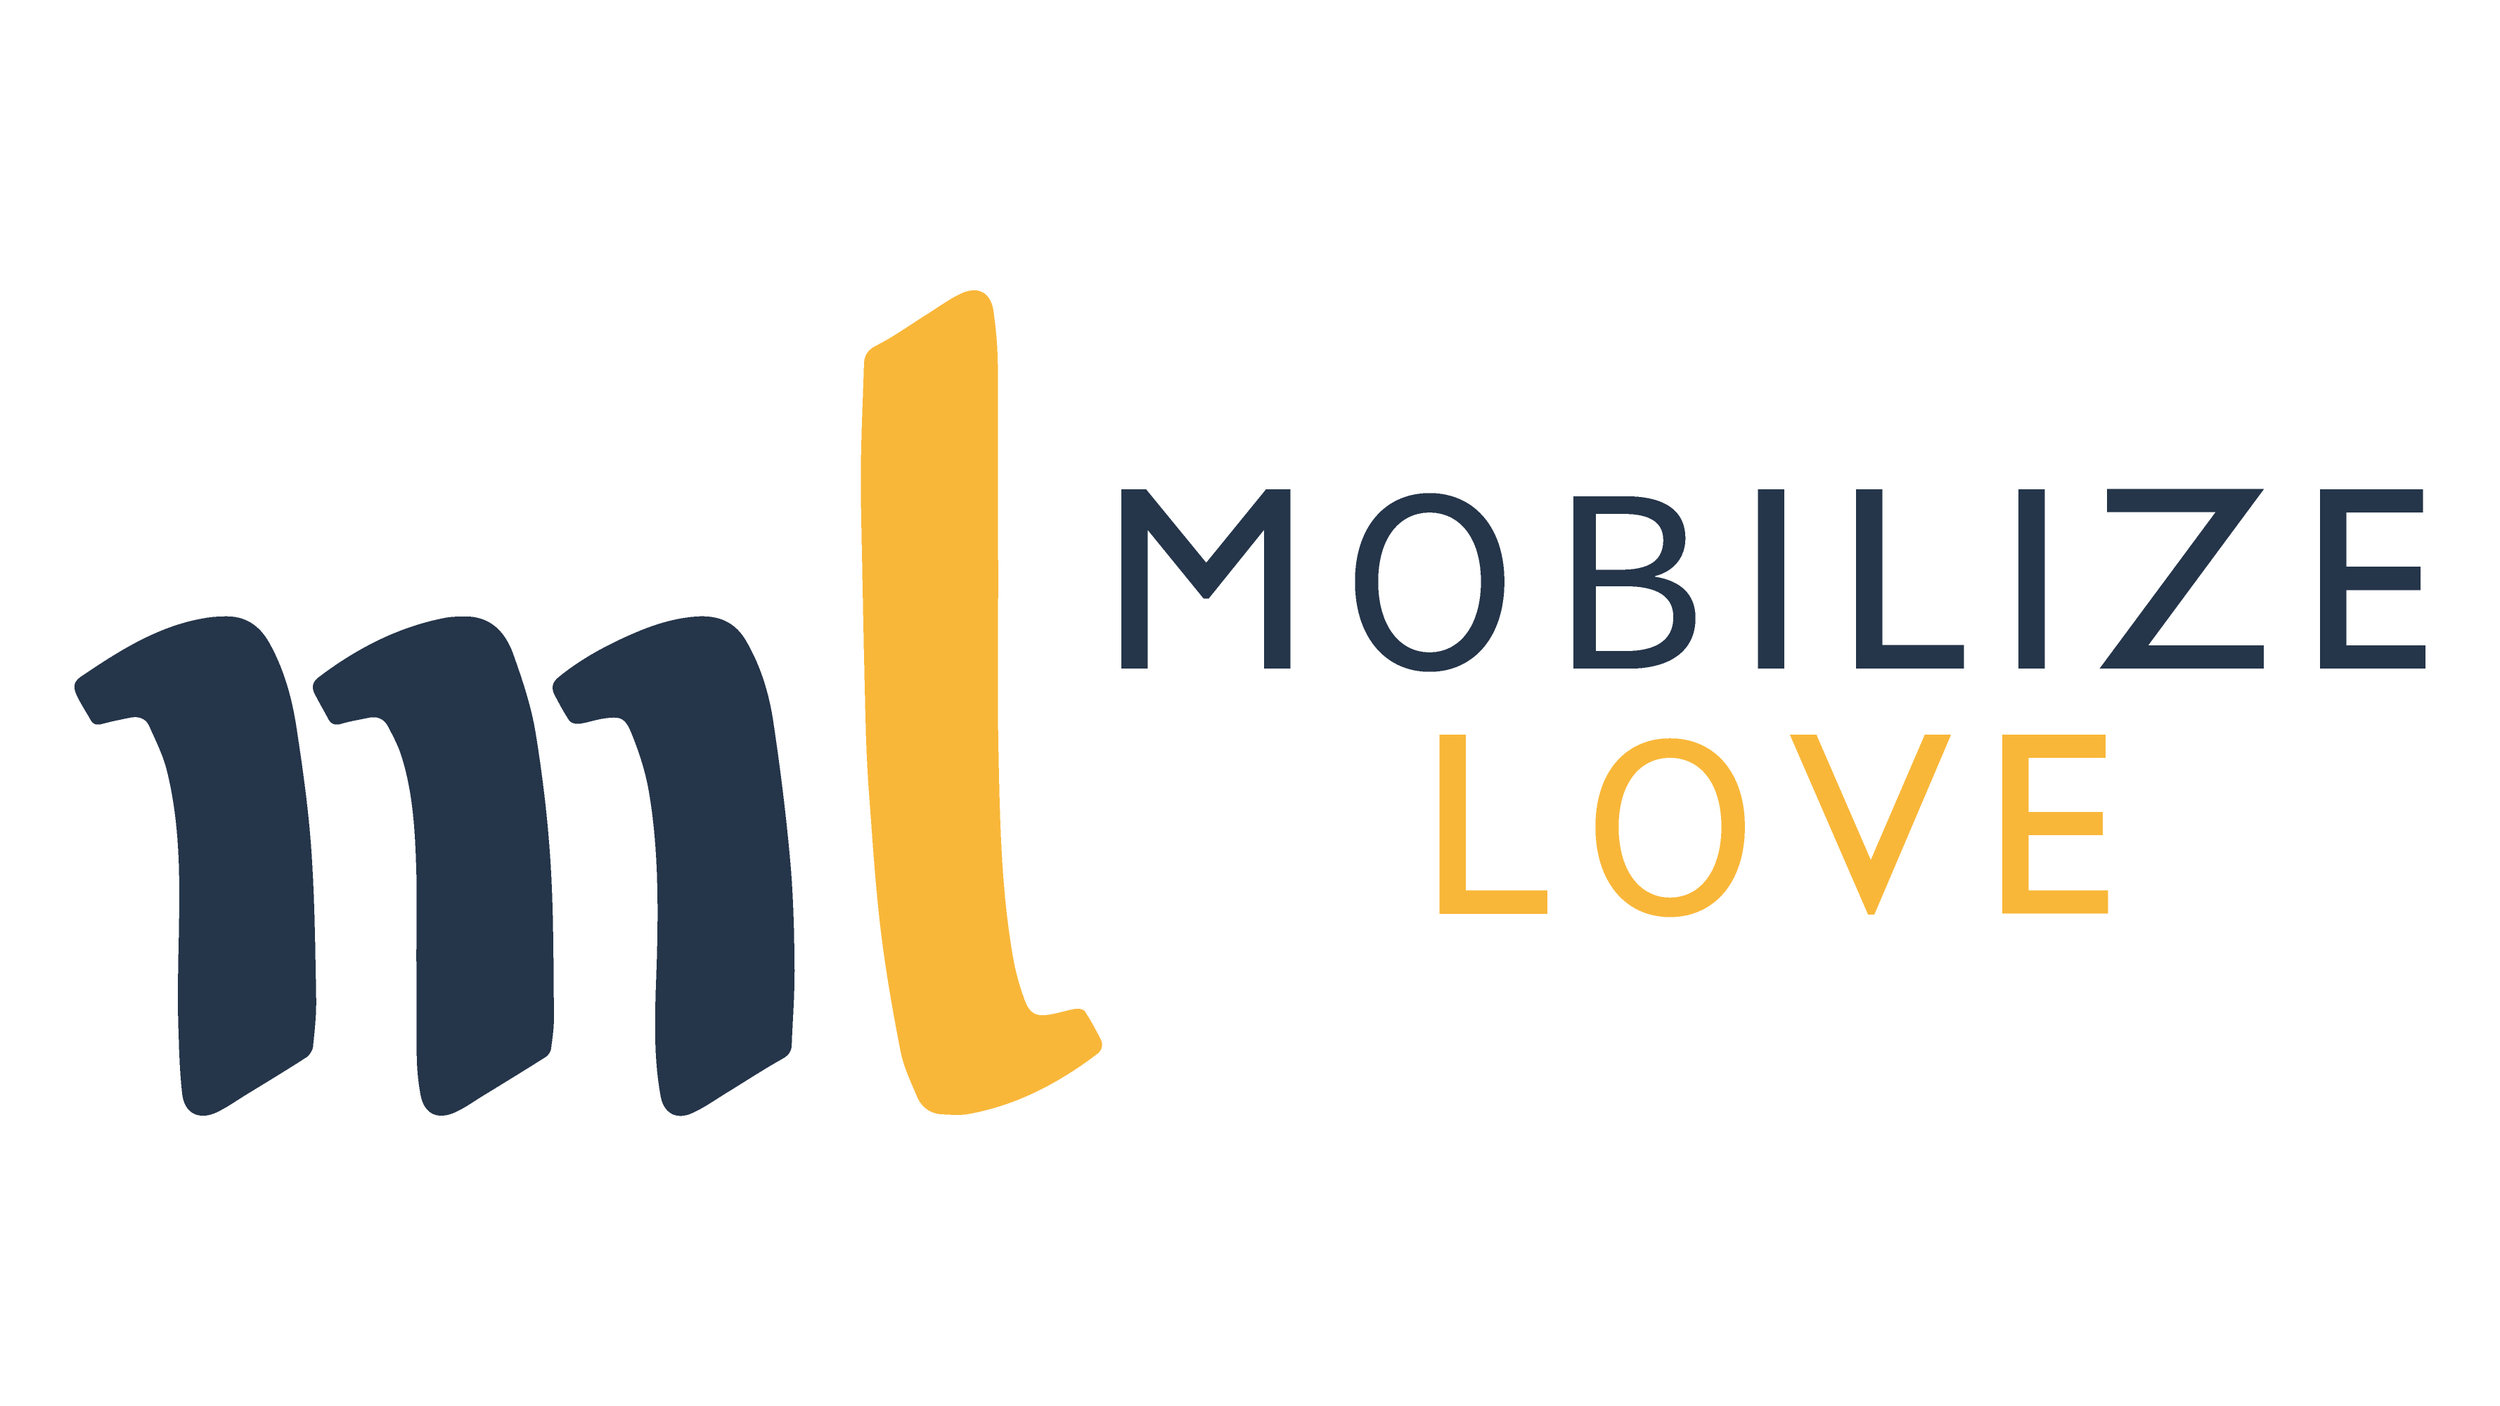 Mobilize Love